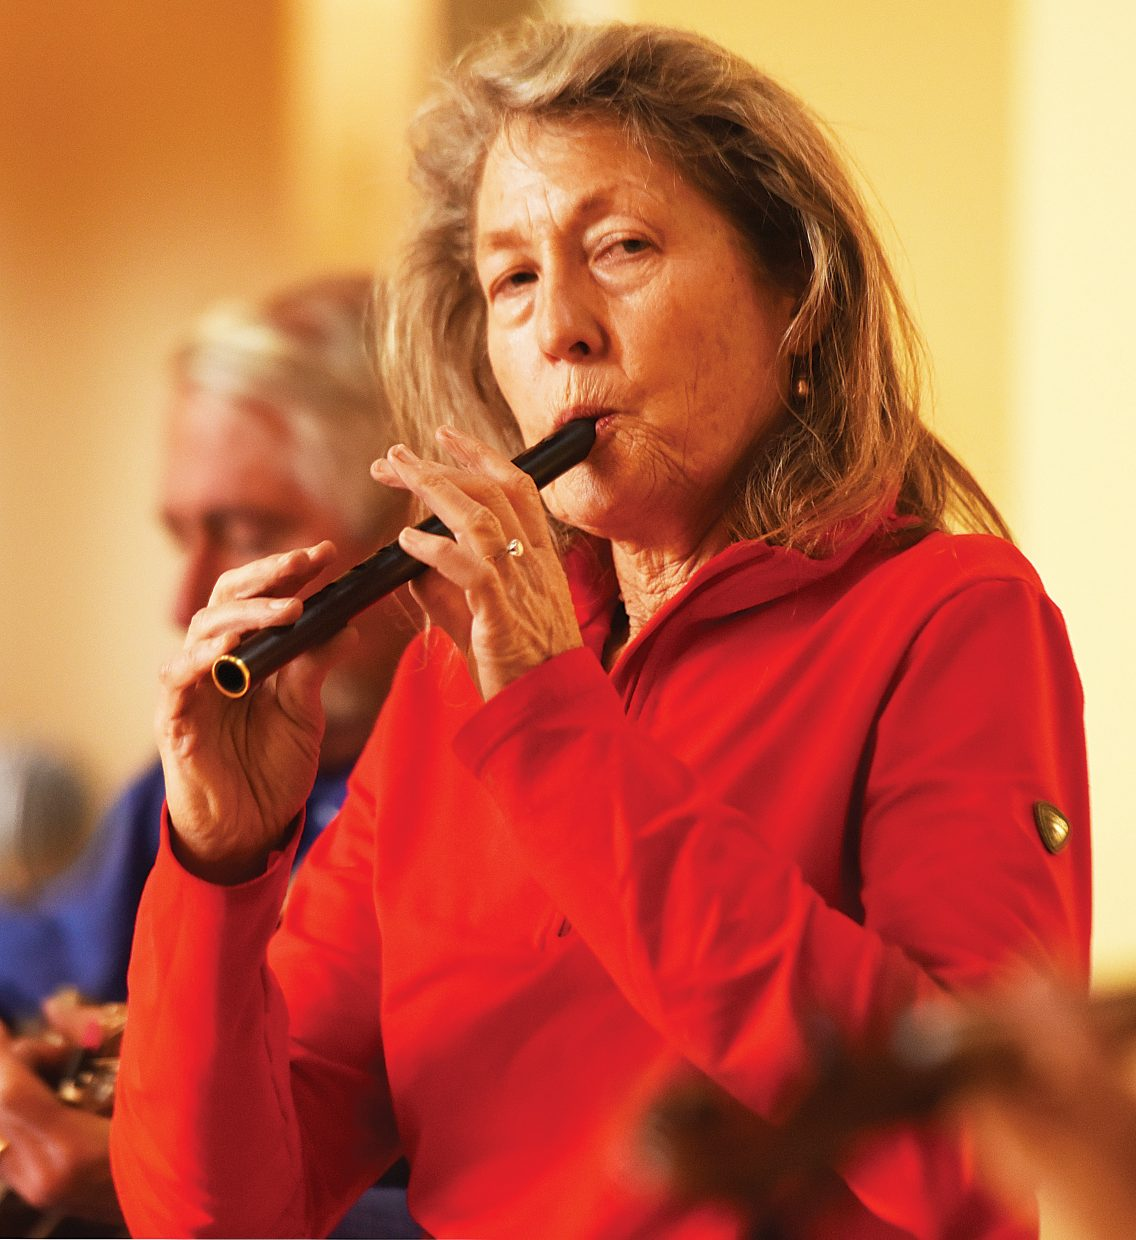 """Mary Beth Norris plays a penny whistle while rehearsing with the The Steamboat Chamber Singers earlier this week. The group's """"Ireland's Call"""" concert, set for Friday and Saturday at St. Paul's Episcopal Church, will feature several guest performers."""